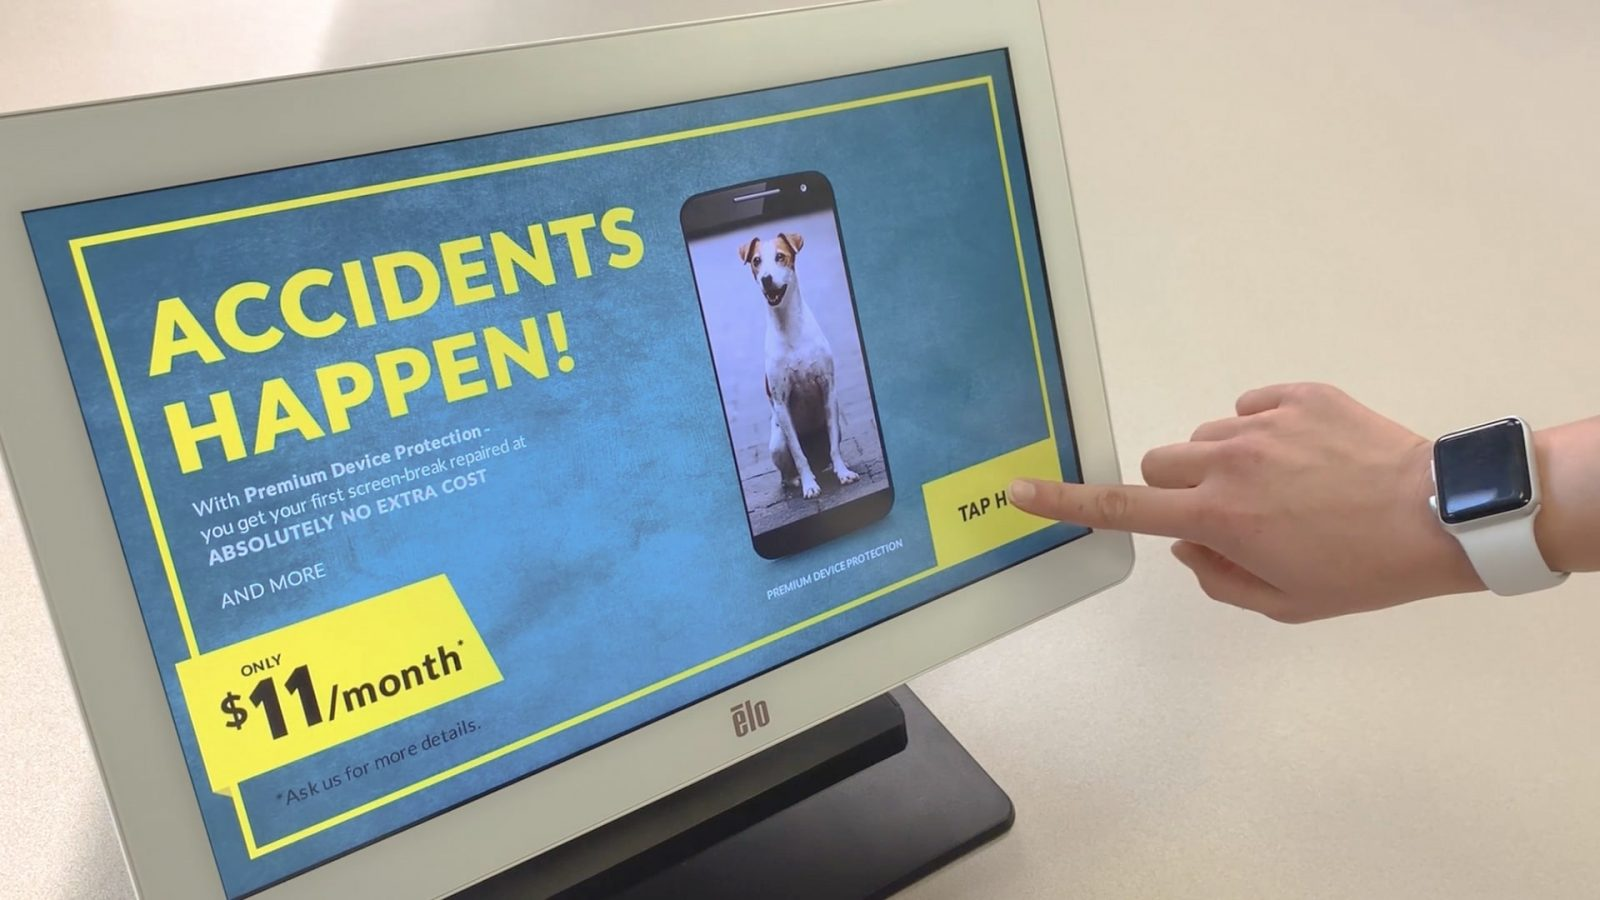 Fido Wireless's interactives throughout the store displays promotions, product features, and more.